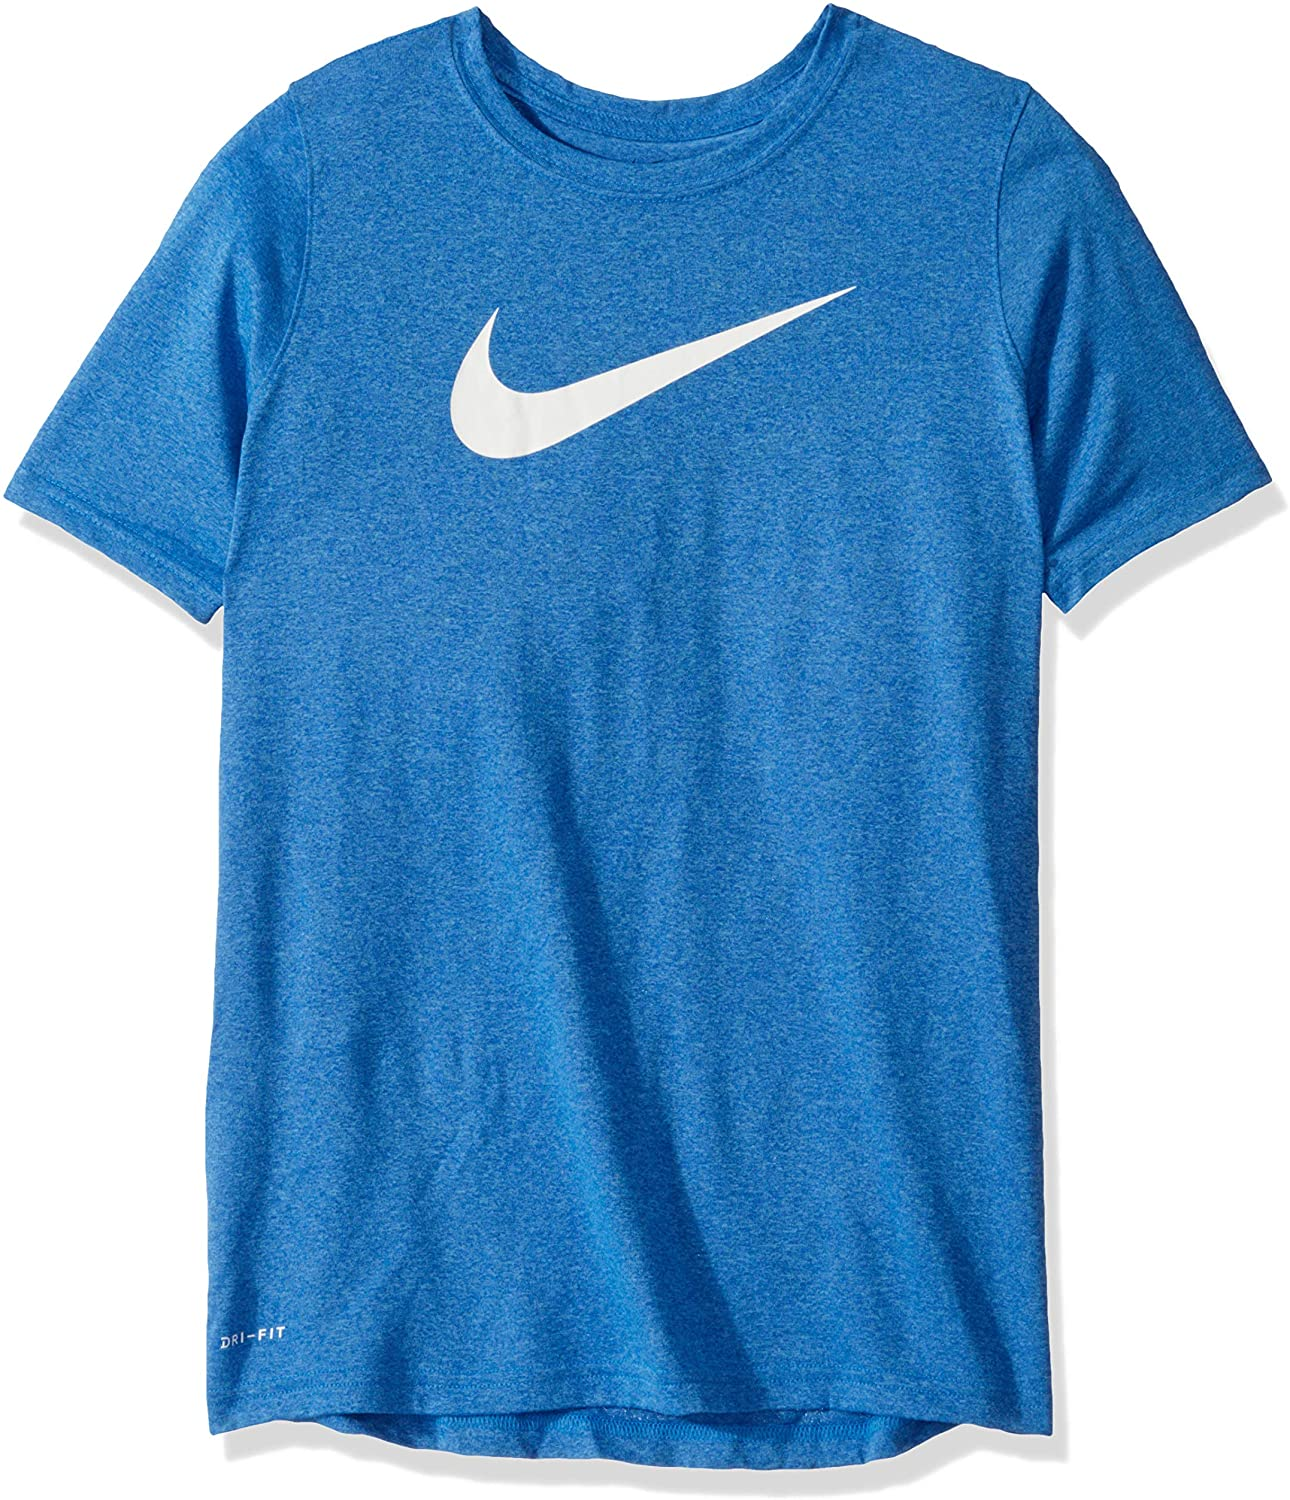 Nike Cheap mail order specialty store Boy's Dri Fit Challenge the lowest price of Japan T Shirt Swoosh